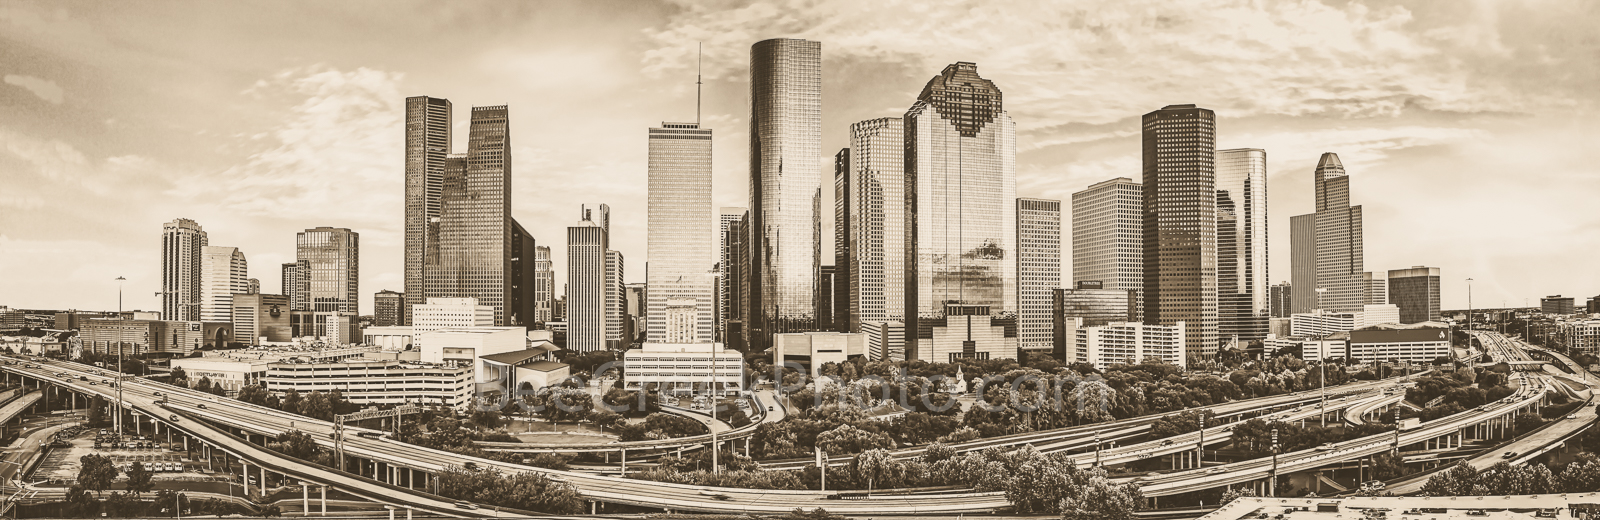 Houston, skyline, sunset, freeway. aerial, city, skyscrapers, high rise, building, pano, panorama, clouds, orange, pinks, yellows, modern, architecture, Texas, Buffalo Bayou, , photo